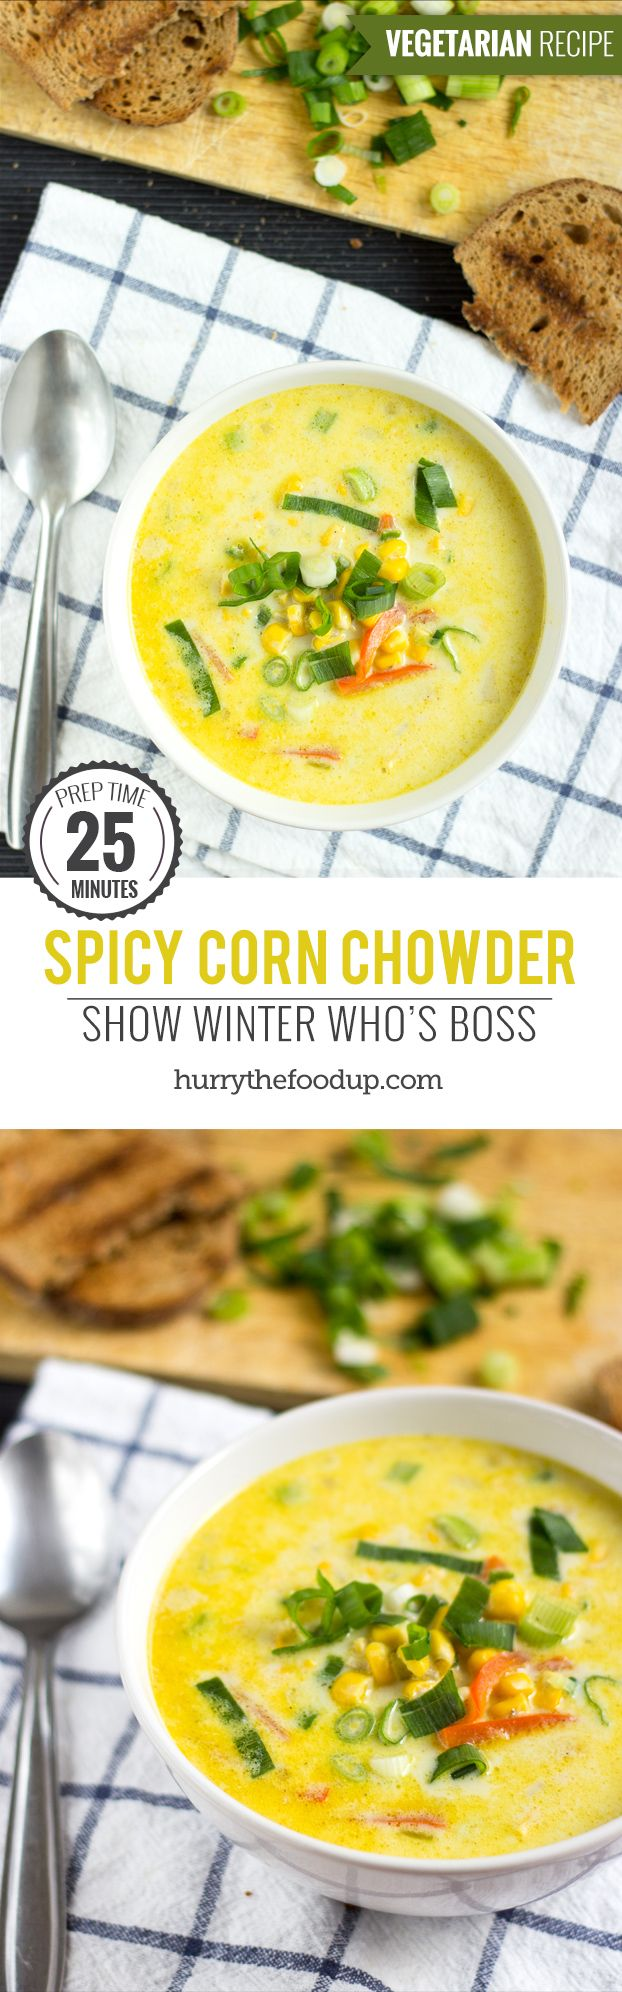 Spicy Corn Chowder. Ready in 25 minutes   #chowder #vegetarian   hurrythefoodup.com